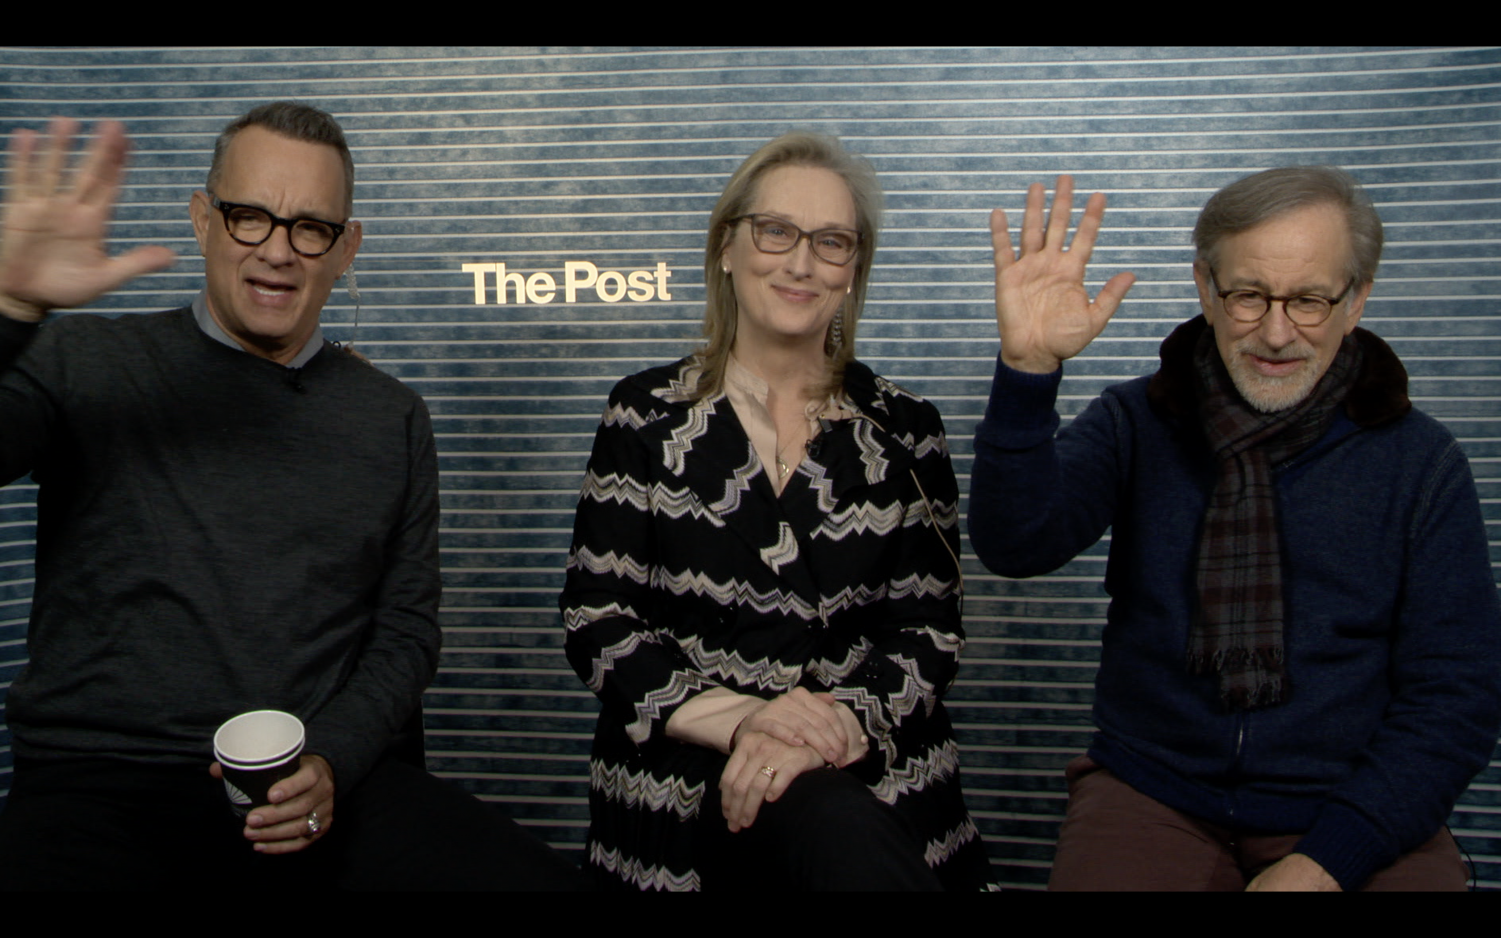 Hanks, Streep and Spielberg speak with college publications via Skype about their new movie.